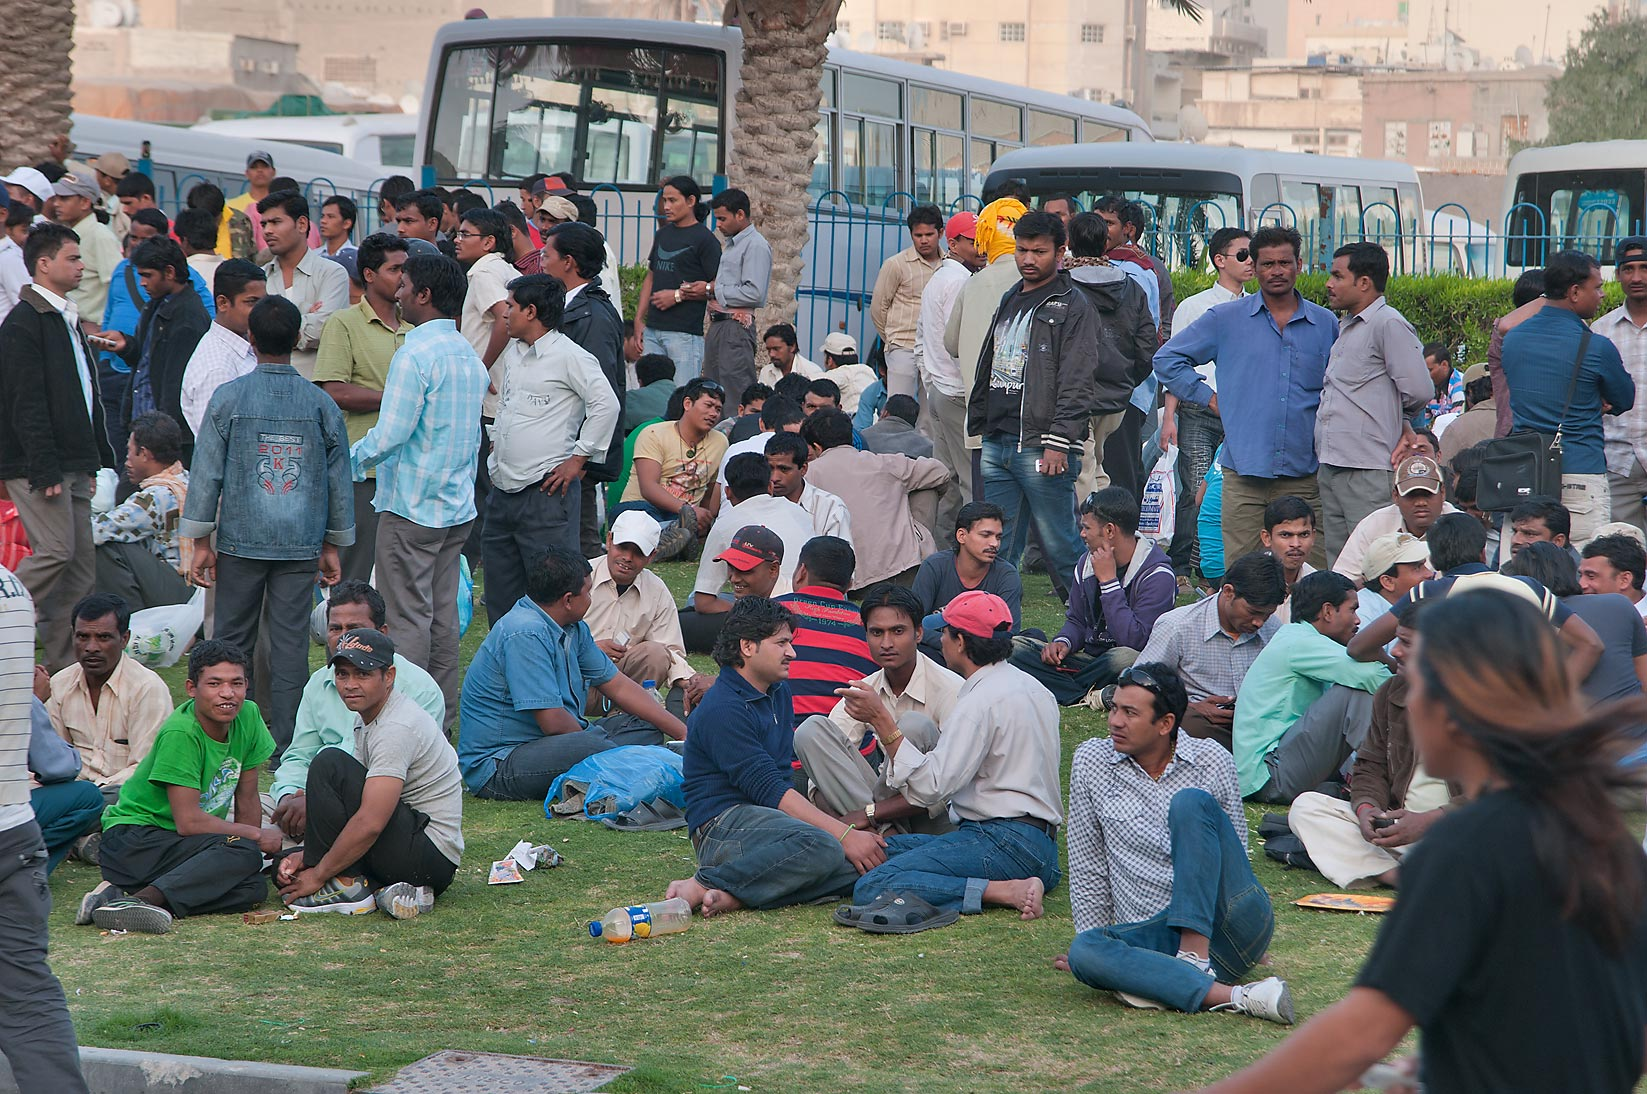 Crowds socializing on Friday evening on a lawn...Al Ghanim) Bus Station. Doha, Qatar